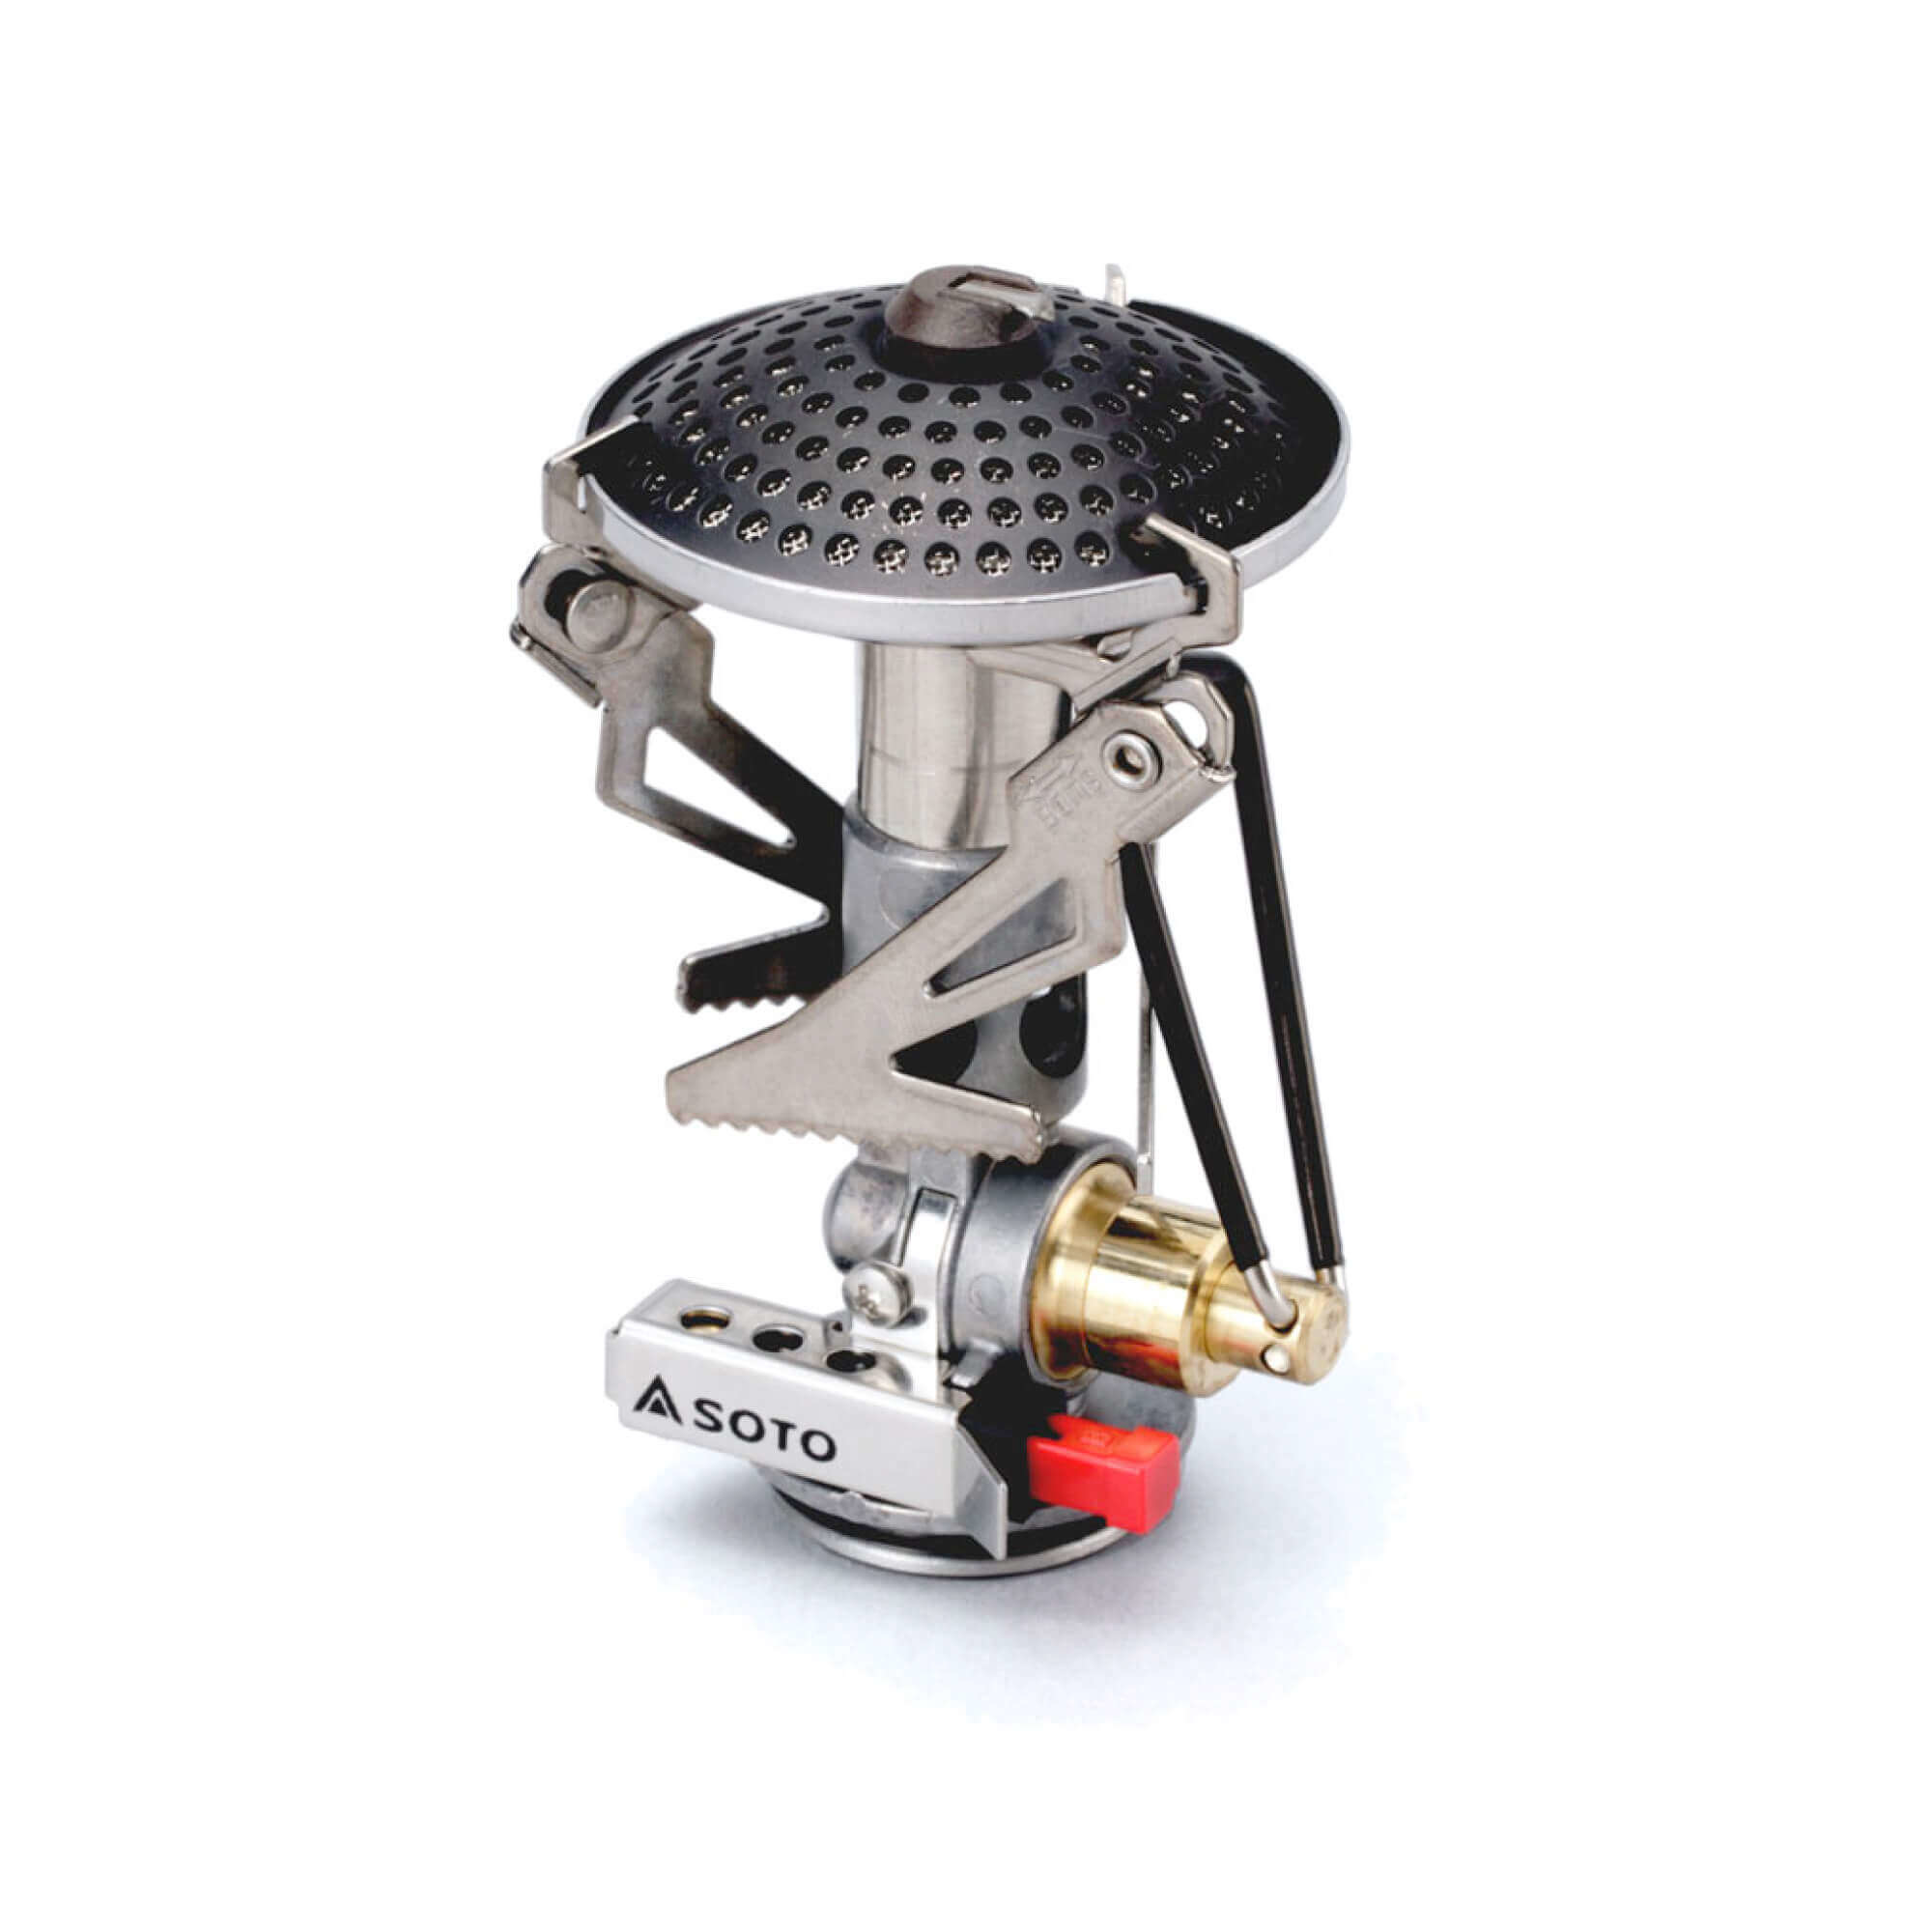 Micro Regulator Stove-3